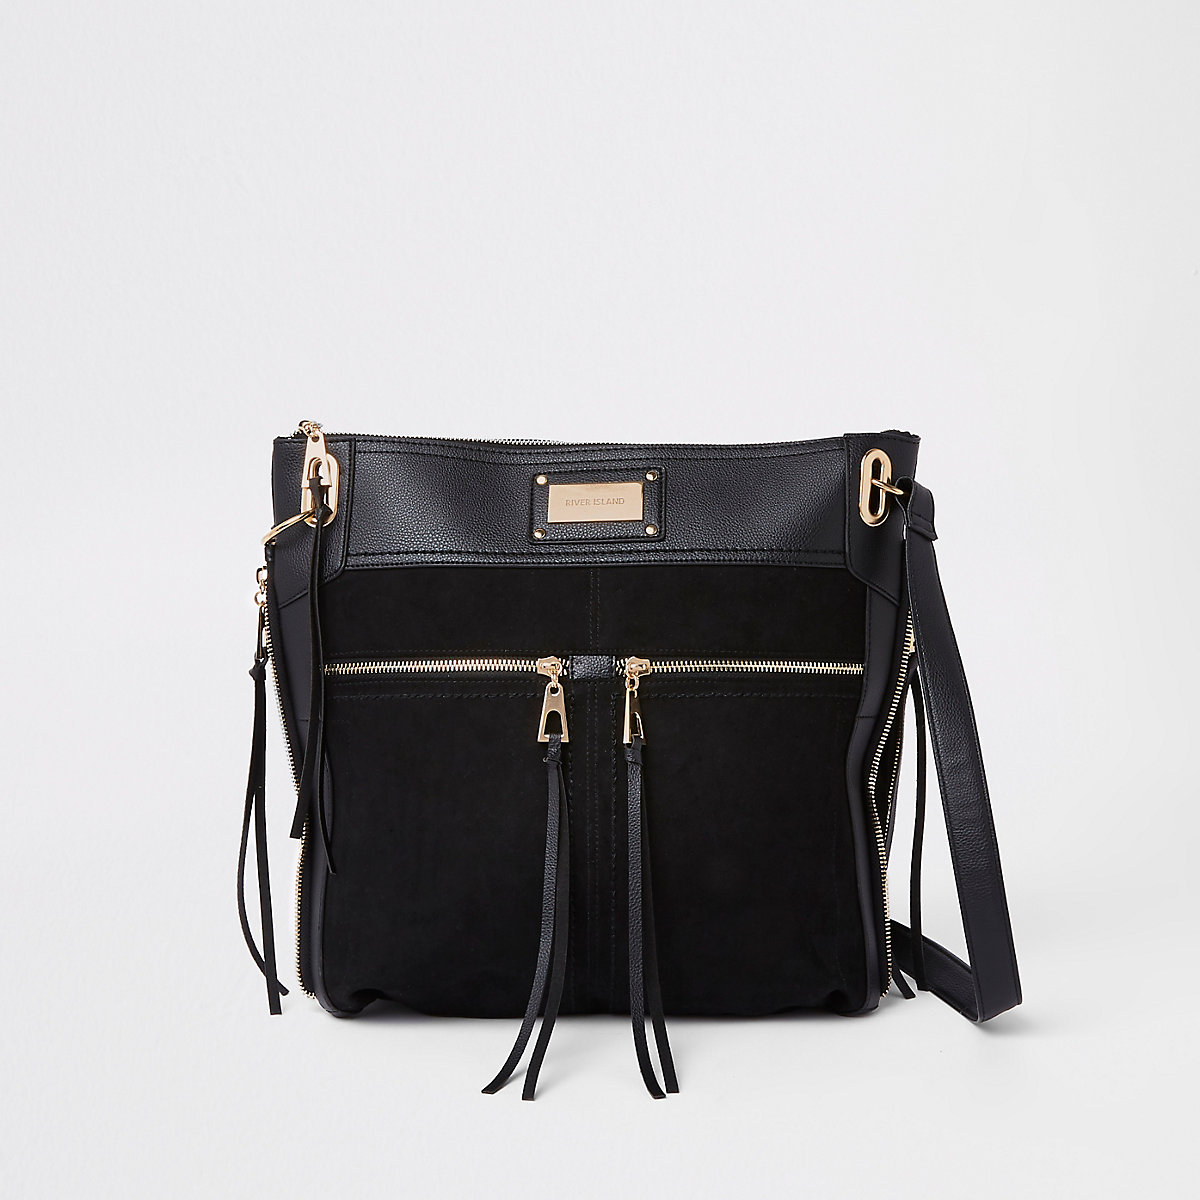 Black double pocket messenger bag